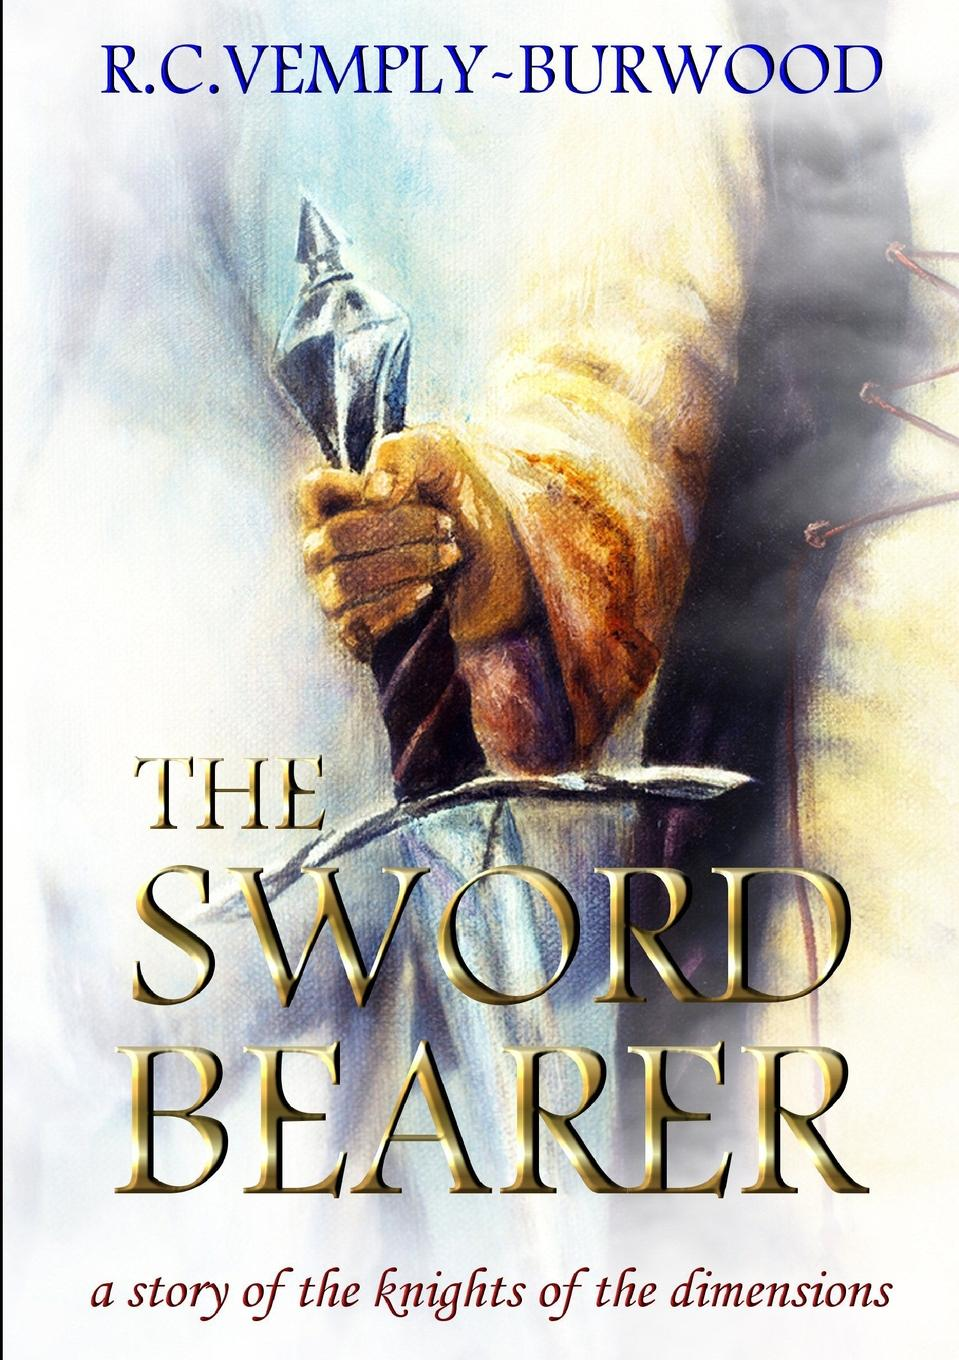 R.C. Vemply-Burwood The Sword Bearer magnus chase and the sword of summer